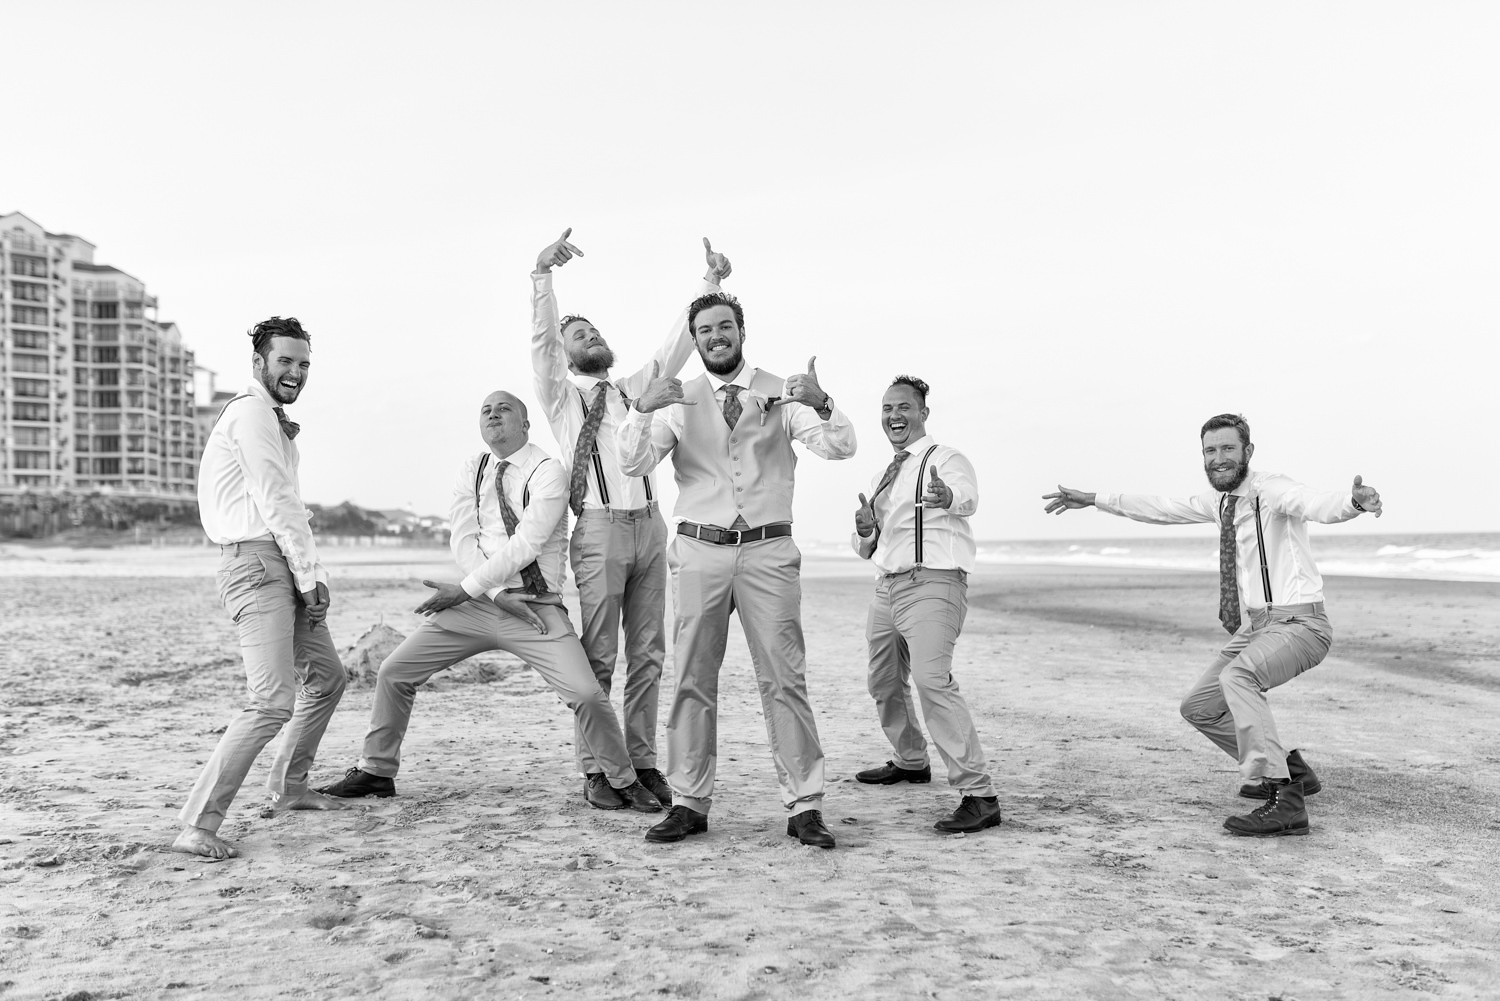 Groom having fun posing with the guys by the ocean - Grande Dunes Ocean Club - Myrtle Beach